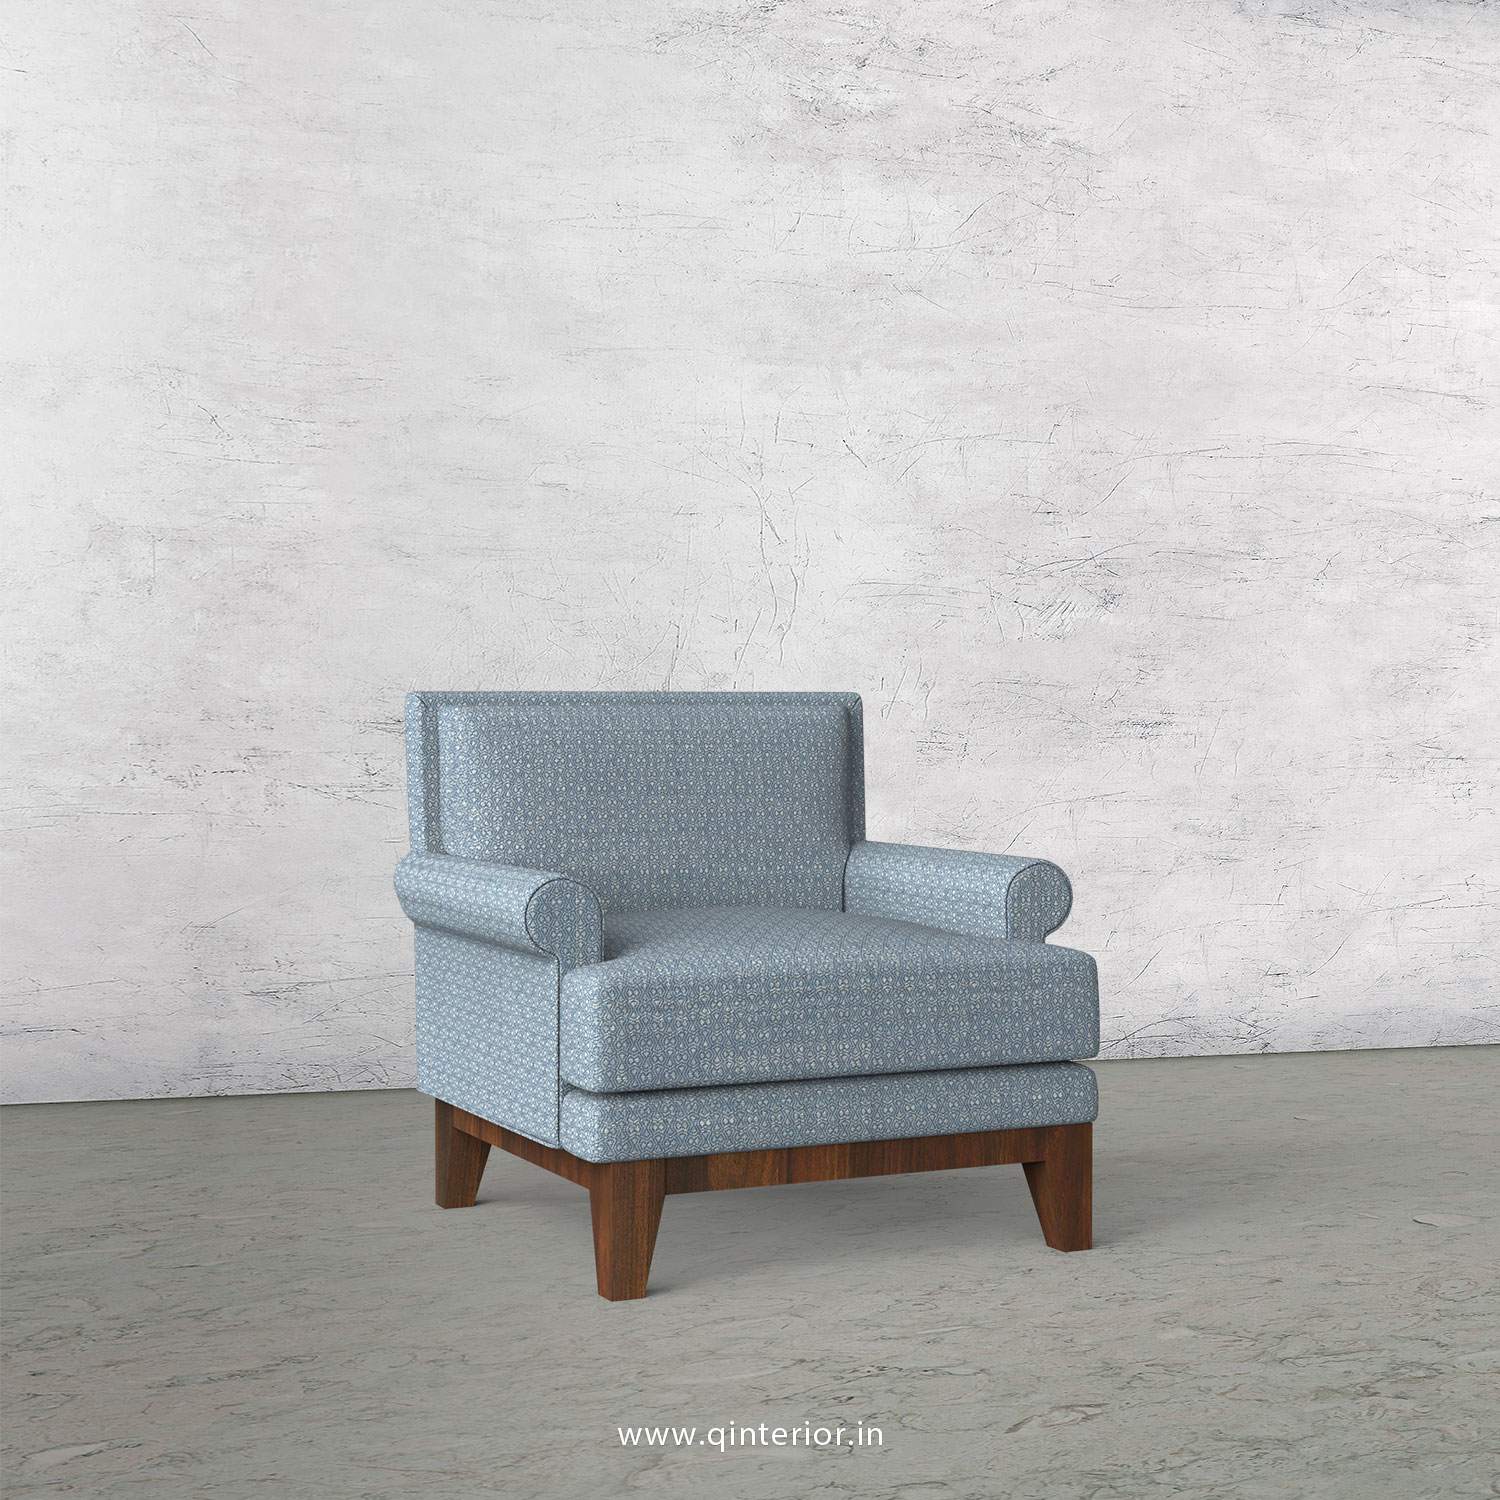 Aviana 1 Seater Sofa in Jacquard - SFA001 JQ28